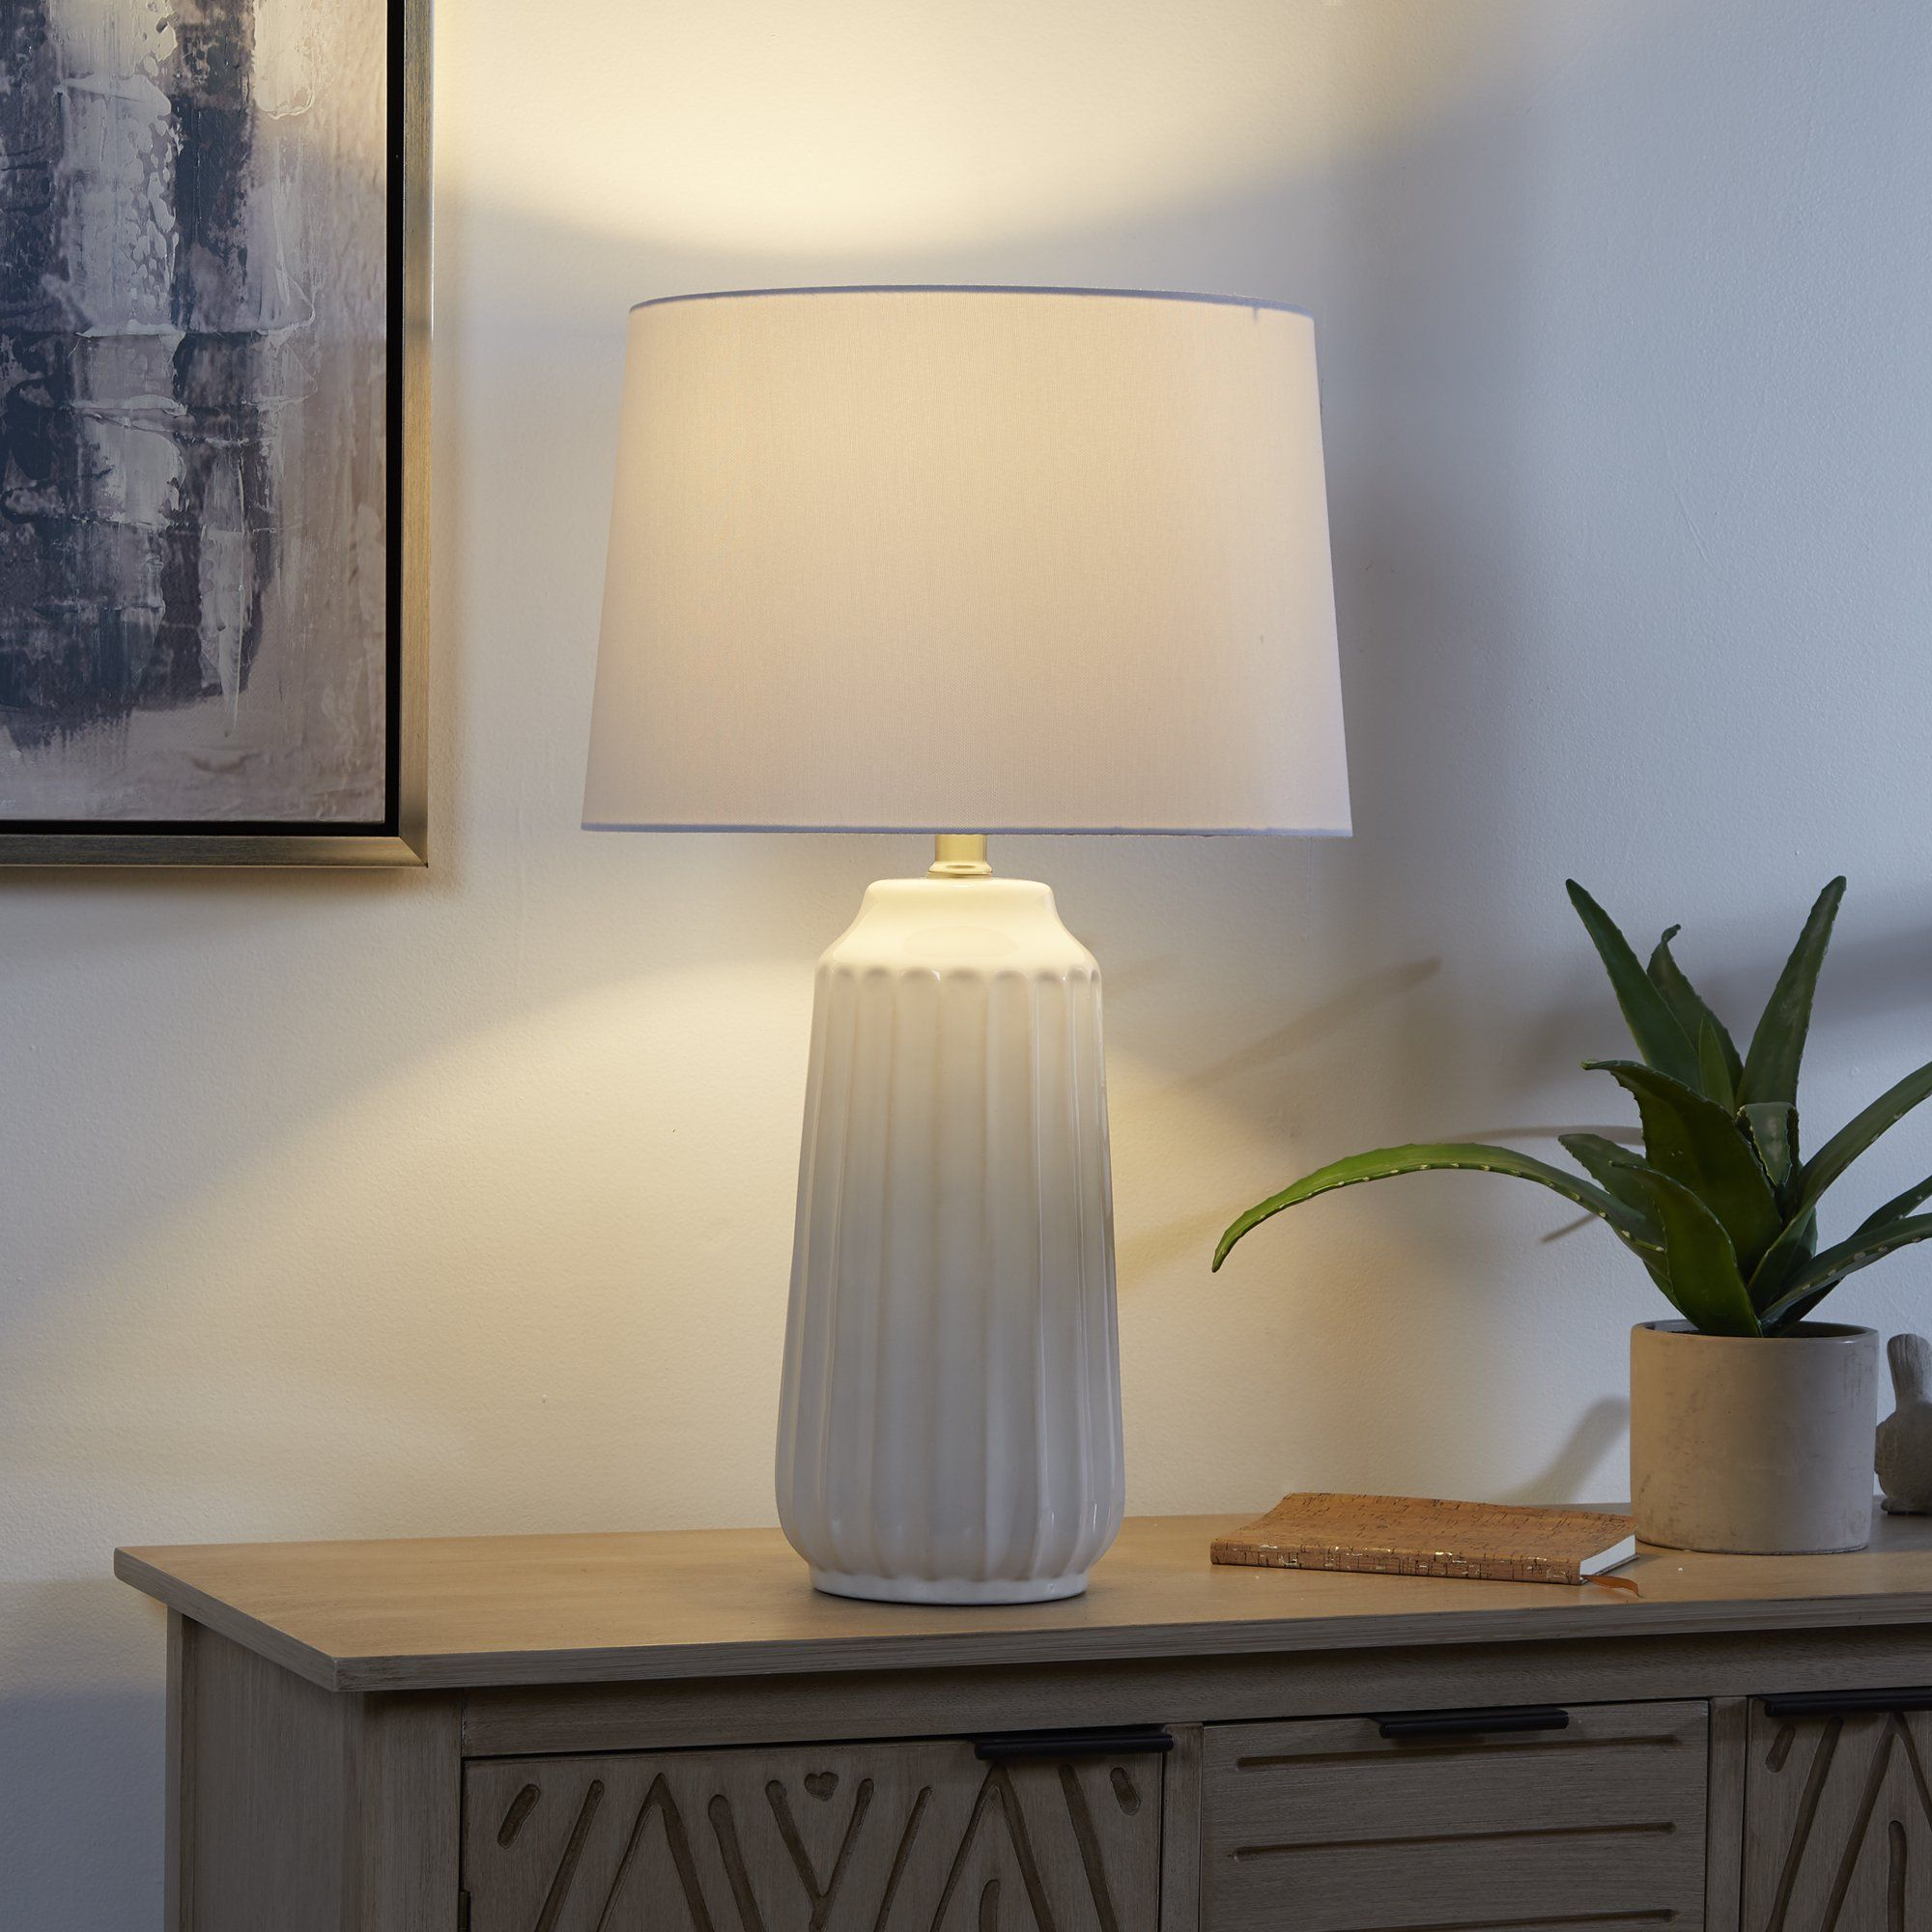 Pin By Coby O Sullivan On Home Ideas In 2021 Table Lamp Base Lamp Bases Table Lamp